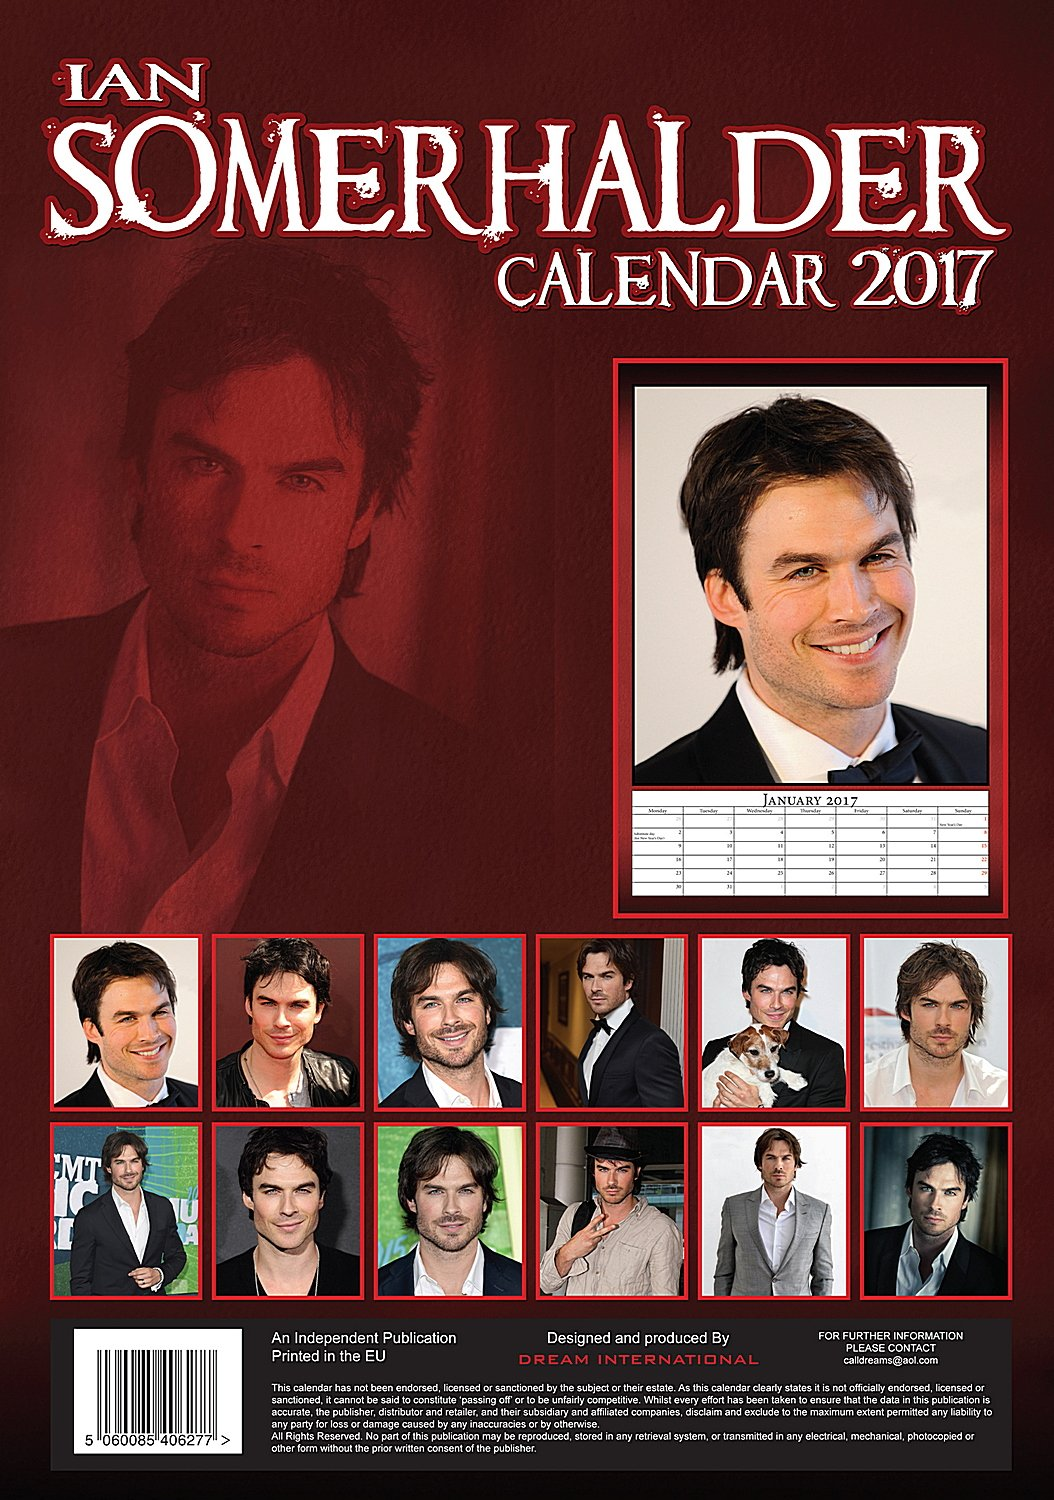 Ian somerhalder calendar calendars 2016 2017 wall calendars ian somerhalder calendar calendars 2016 2017 wall calendars movie wall calendar sexy men calendar poster calendar celebrity calendars by dream m4hsunfo